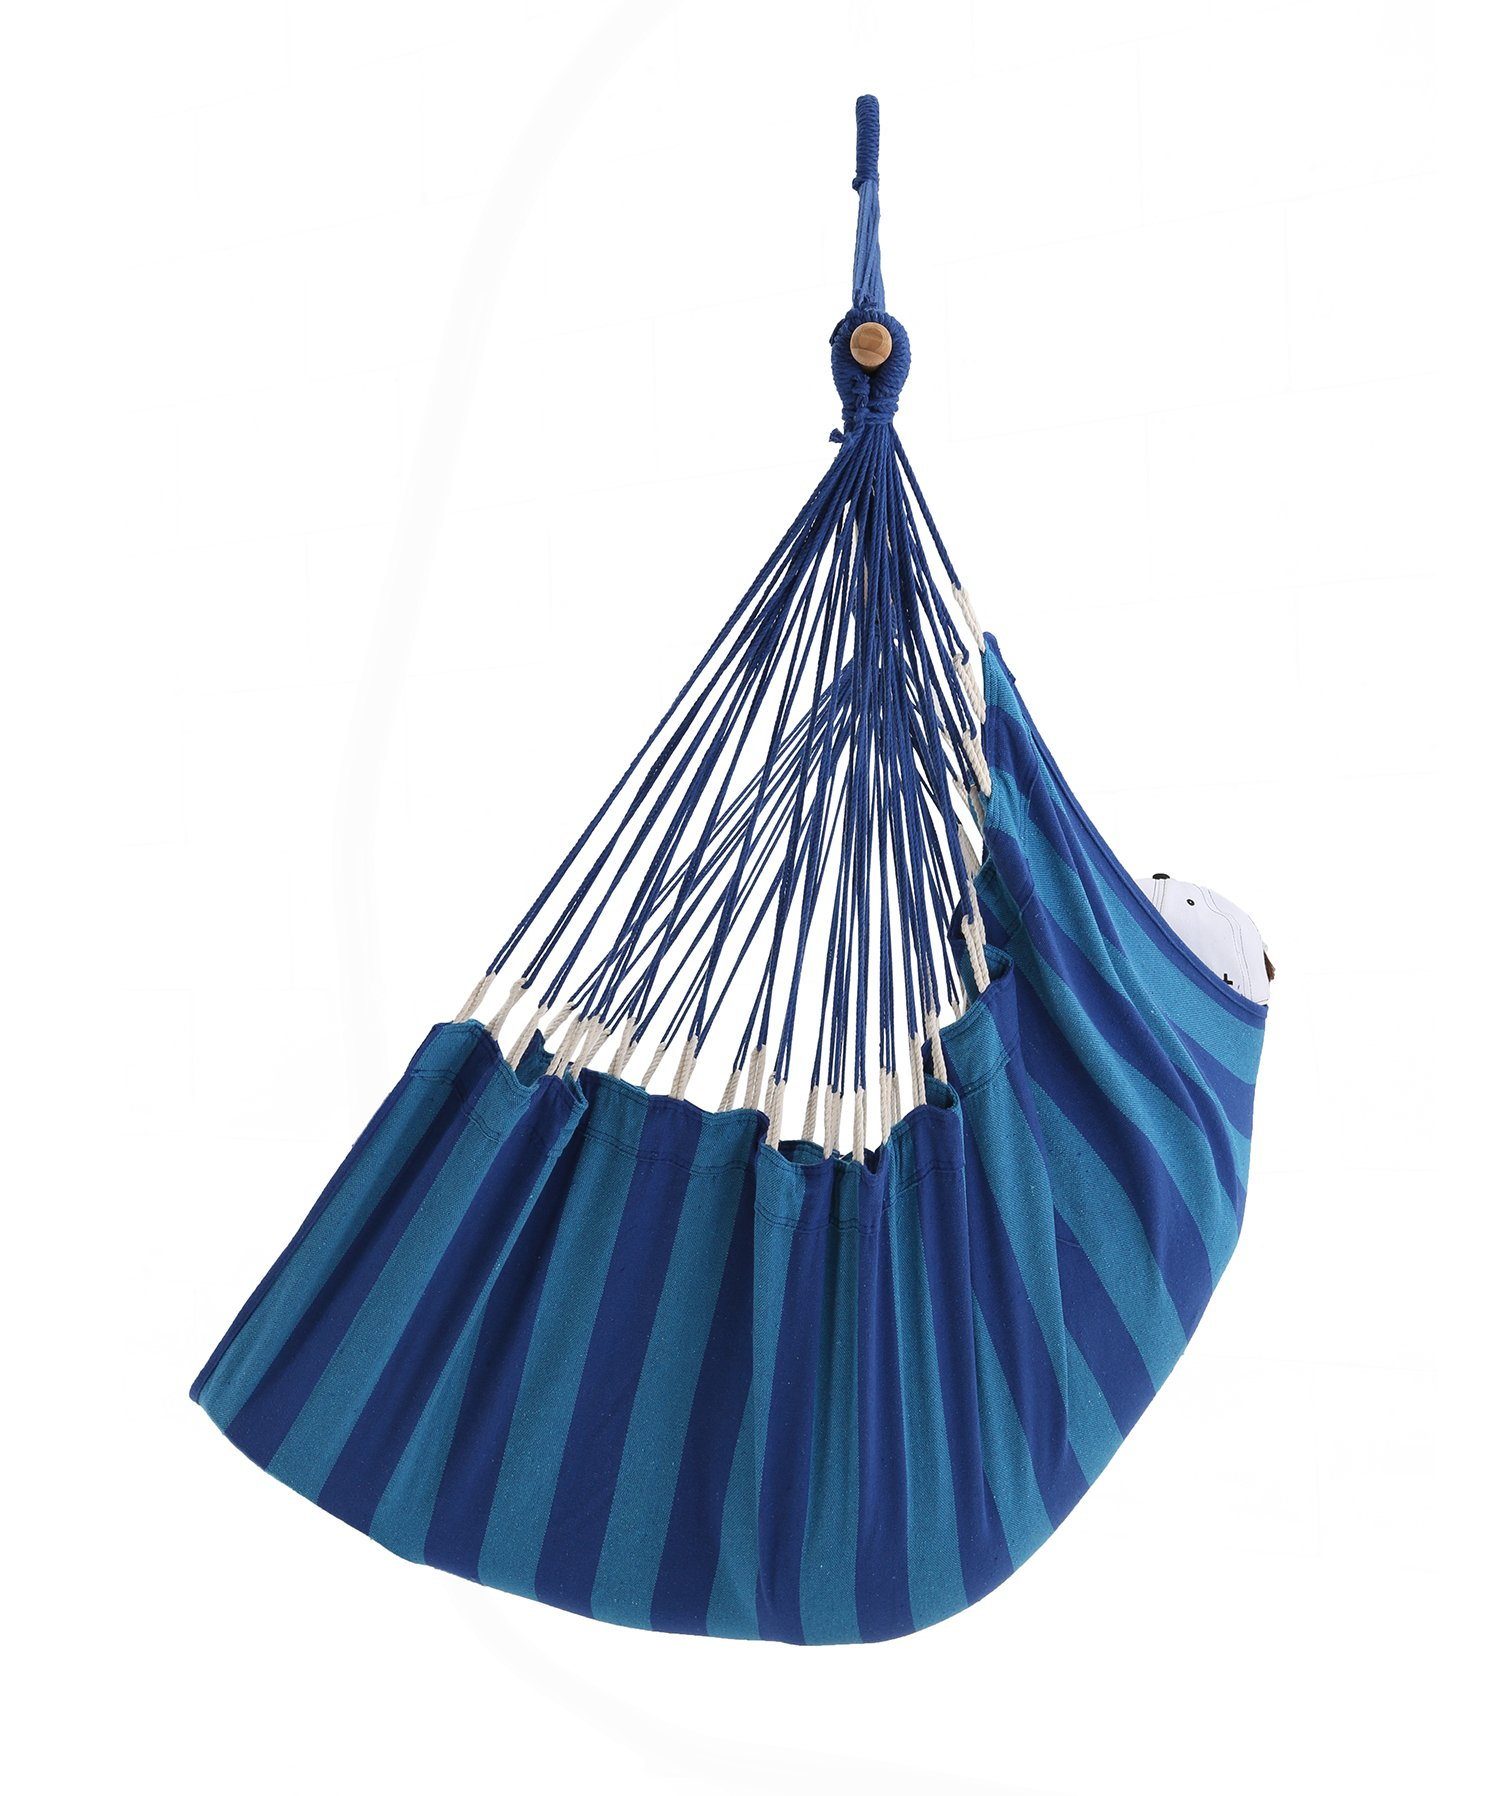 ELC HAMMOCK Large Hanging Rope Hammock Chair Porch Swing Seat for Patio, Yard, Bedroom, Porch, Indoor or Outdoor - Max. 330 Lbs, Blue Stripes